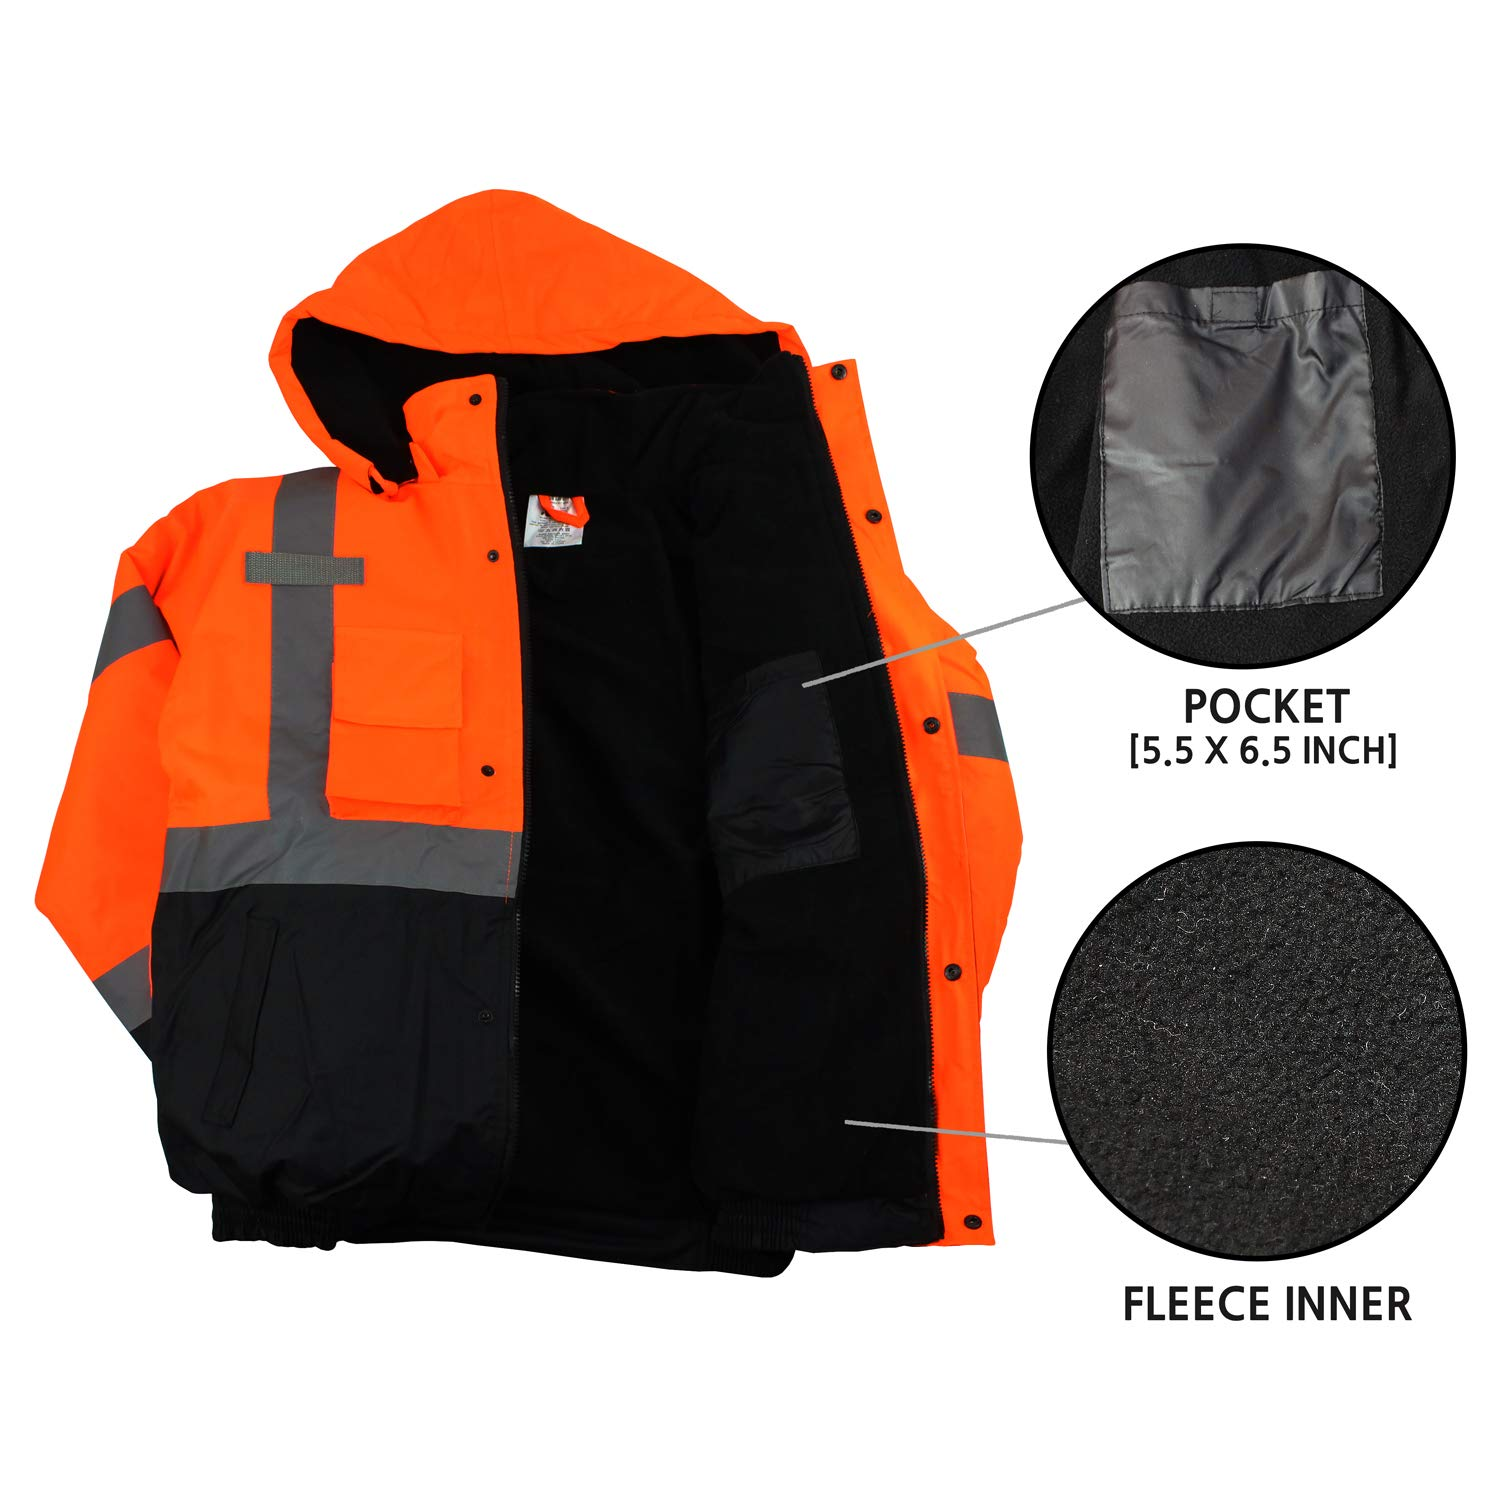 New York Hi-Viz Workwear WJ9011-L Men's ANSI Class 3 High Visibility Bomber Safety Jacket, Waterproof (Large, Orange) by New York Hi-Viz Workwear (Image #5)